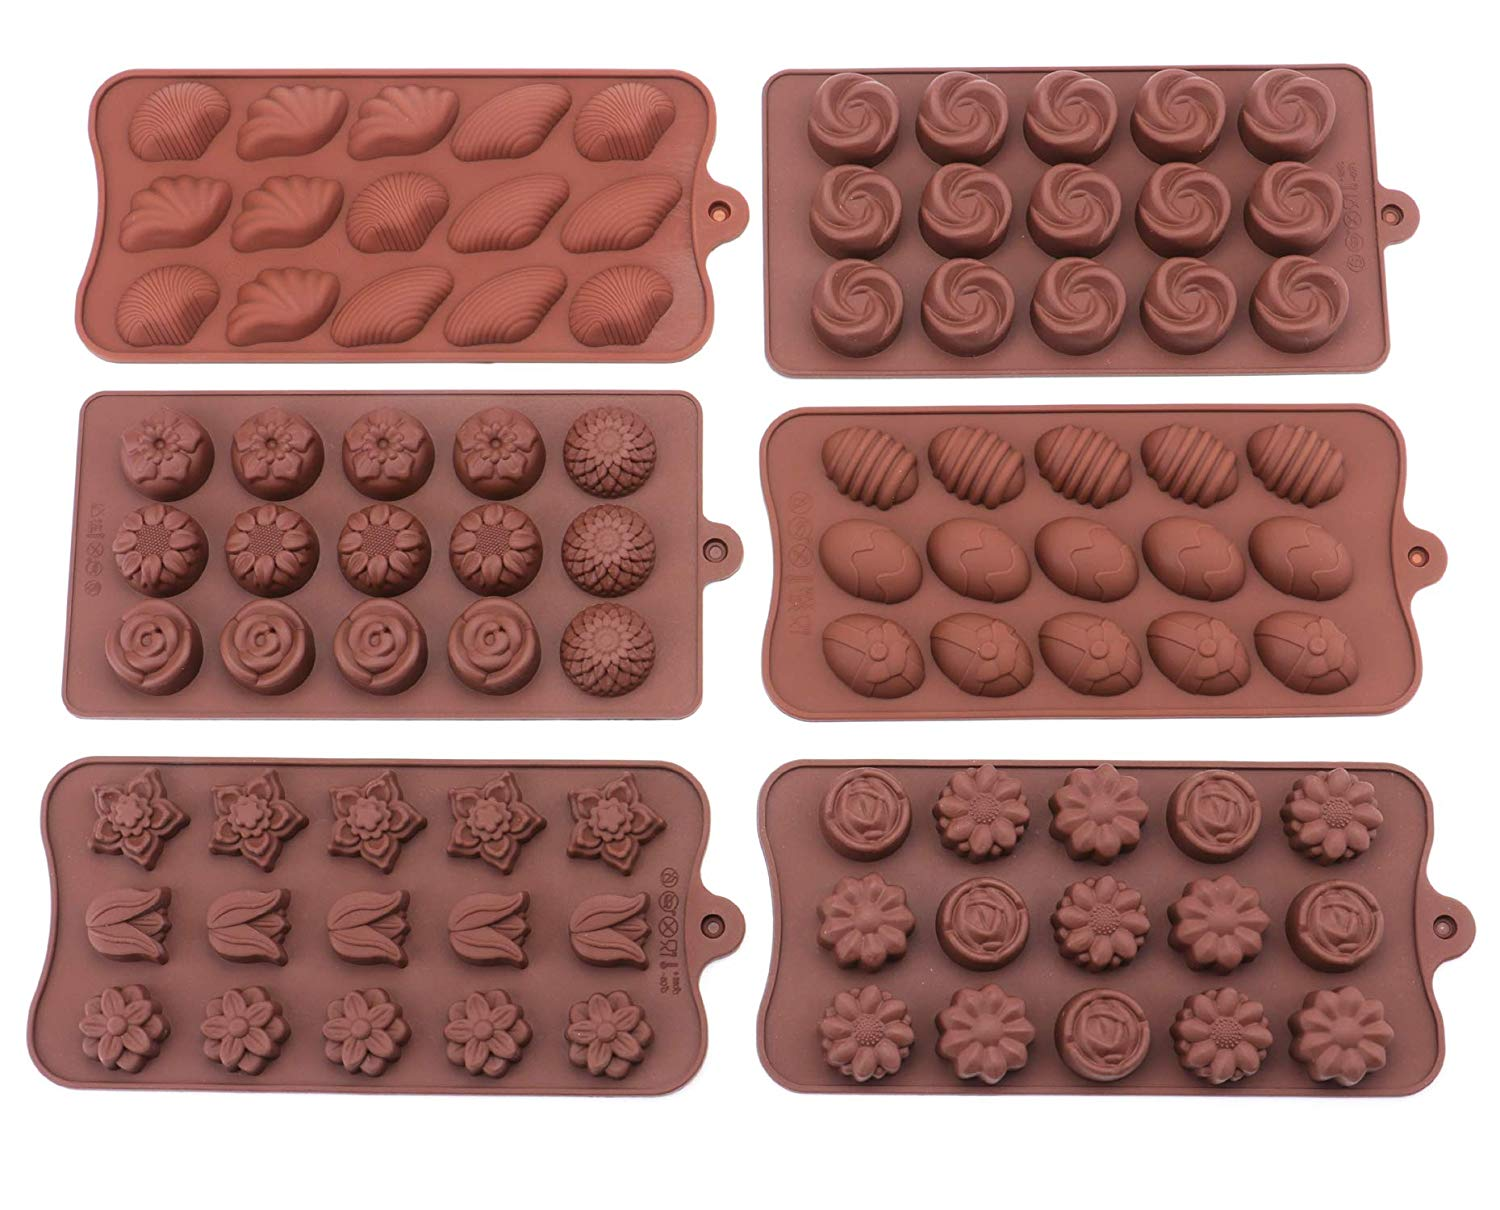 Bekith 6 Pack Non-stick Silicone Candy Molds - Silicone Molds for Chocolate Jelly Candy Cake DIY - Chocolate Molds Silicone Molds Candy Mold